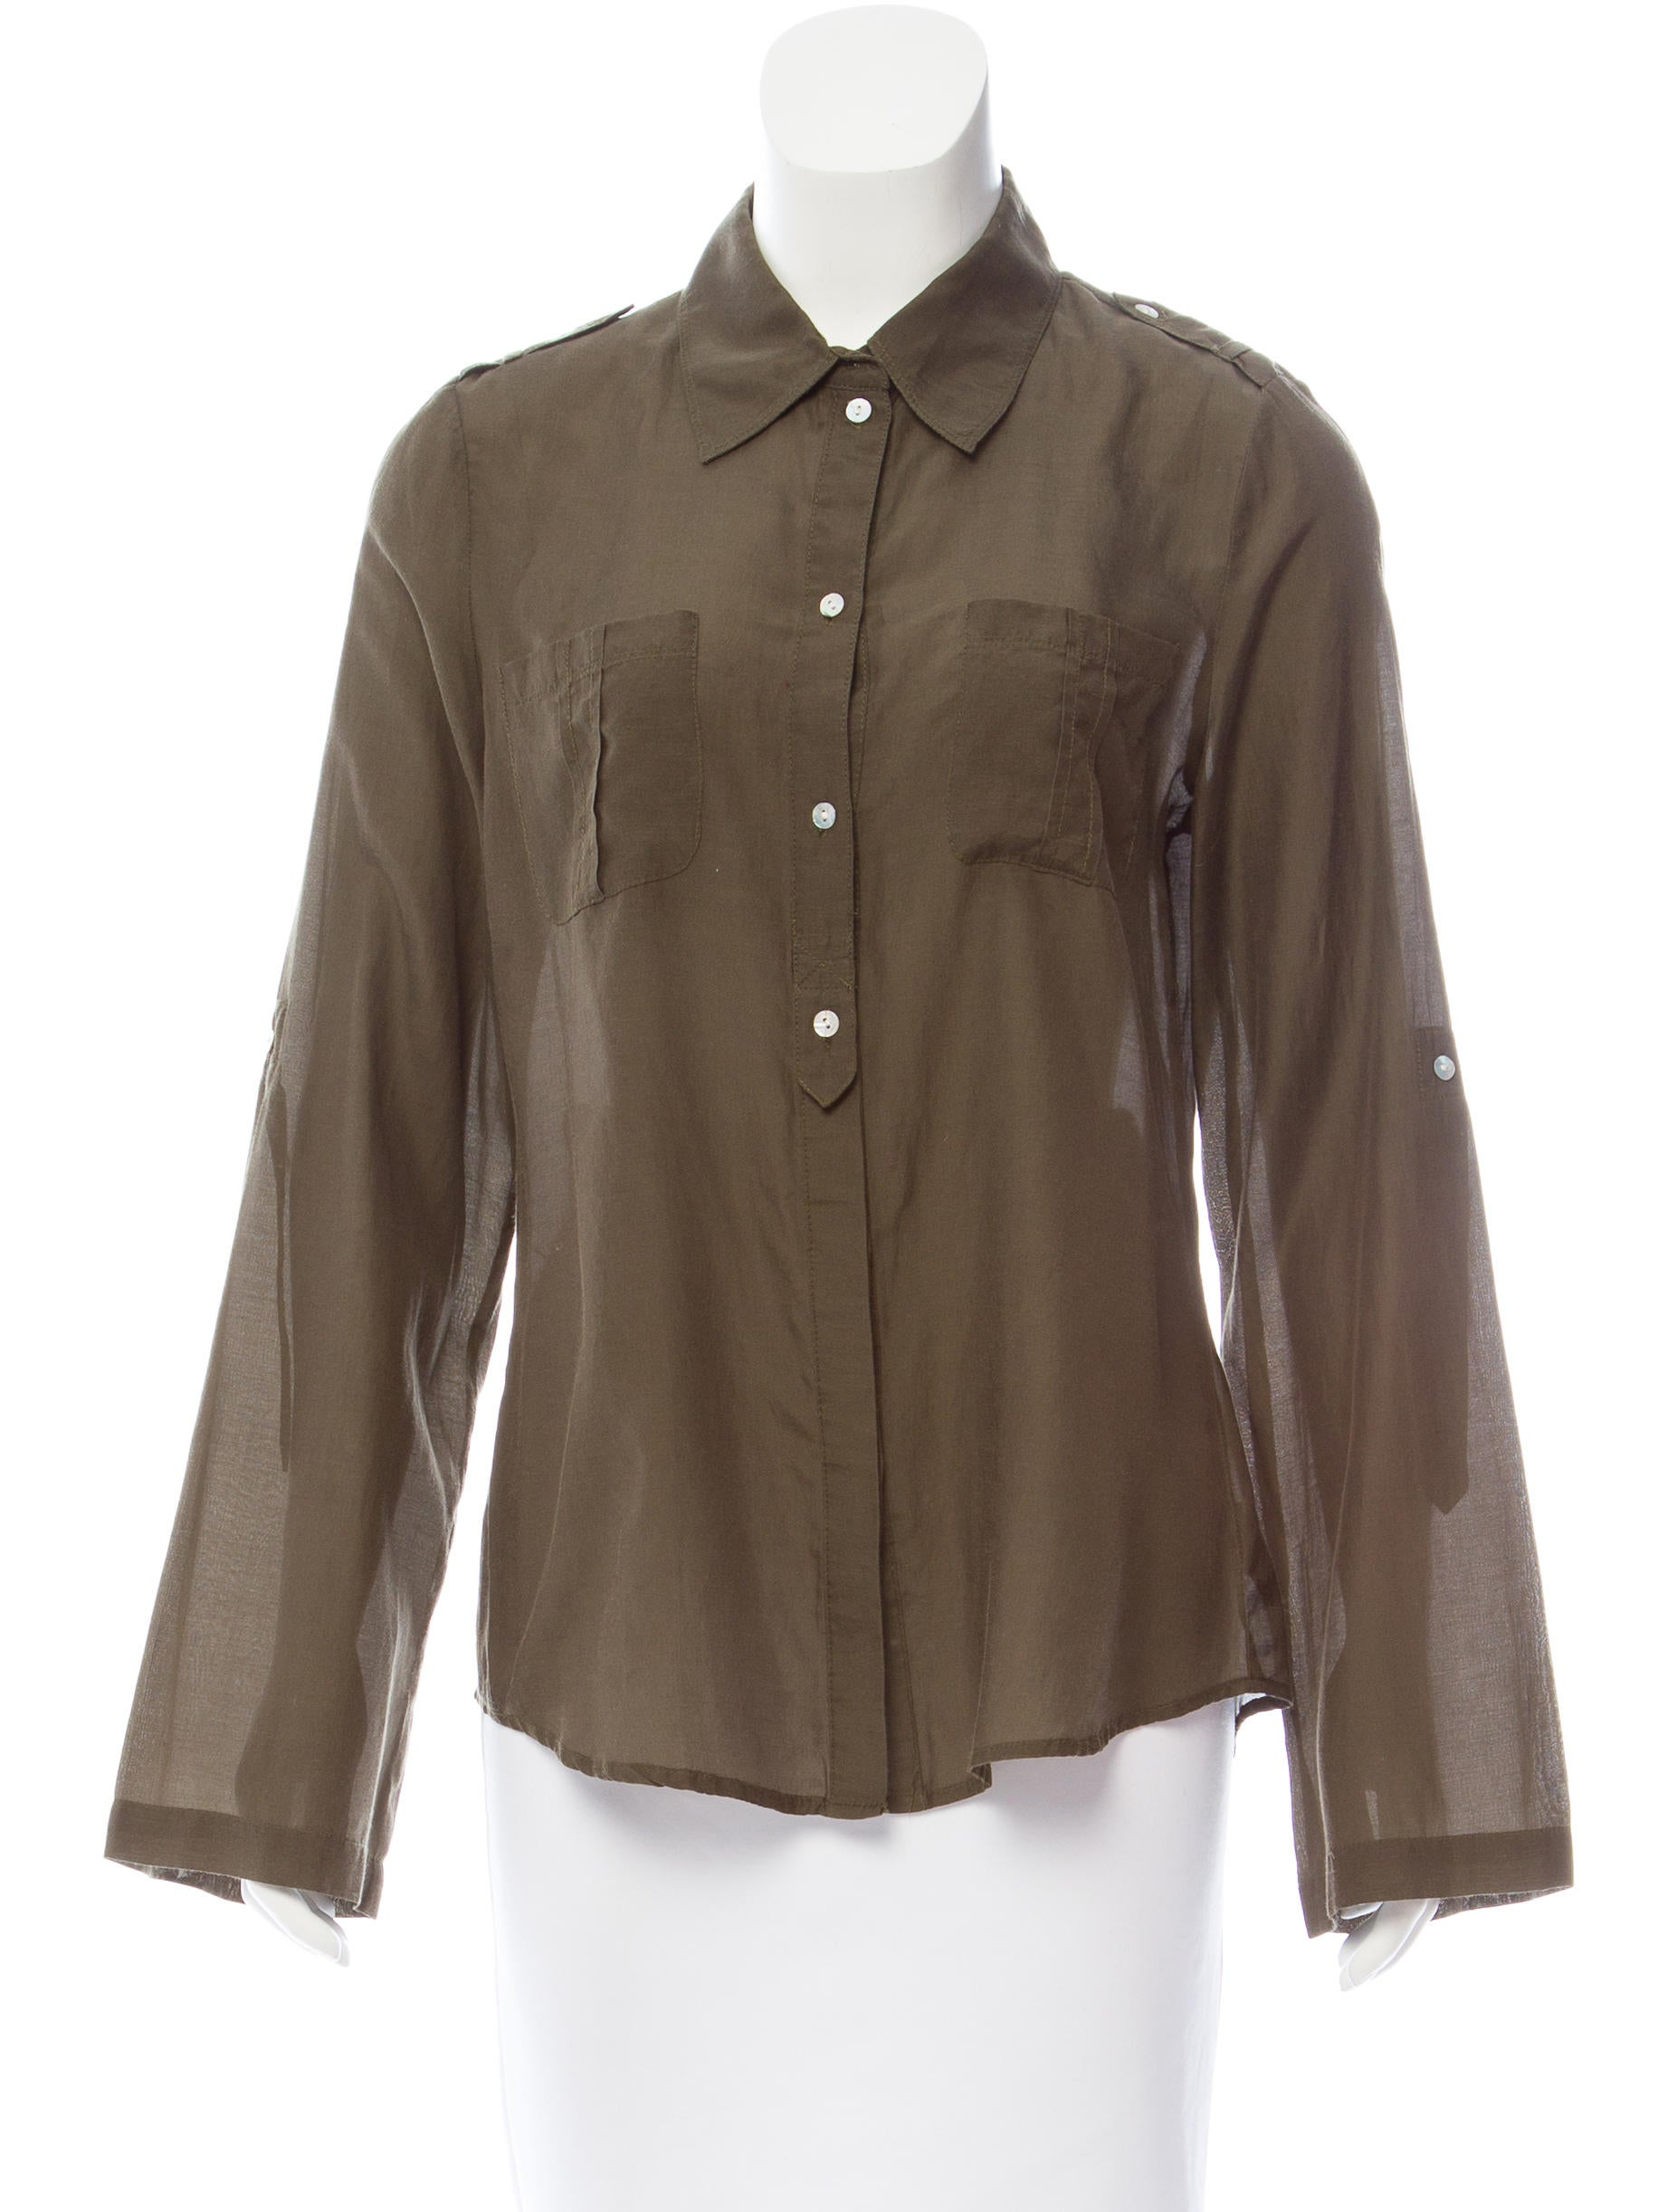 Sanctuary collared button up top clothing wsary20021 for Women s collared button up shirts